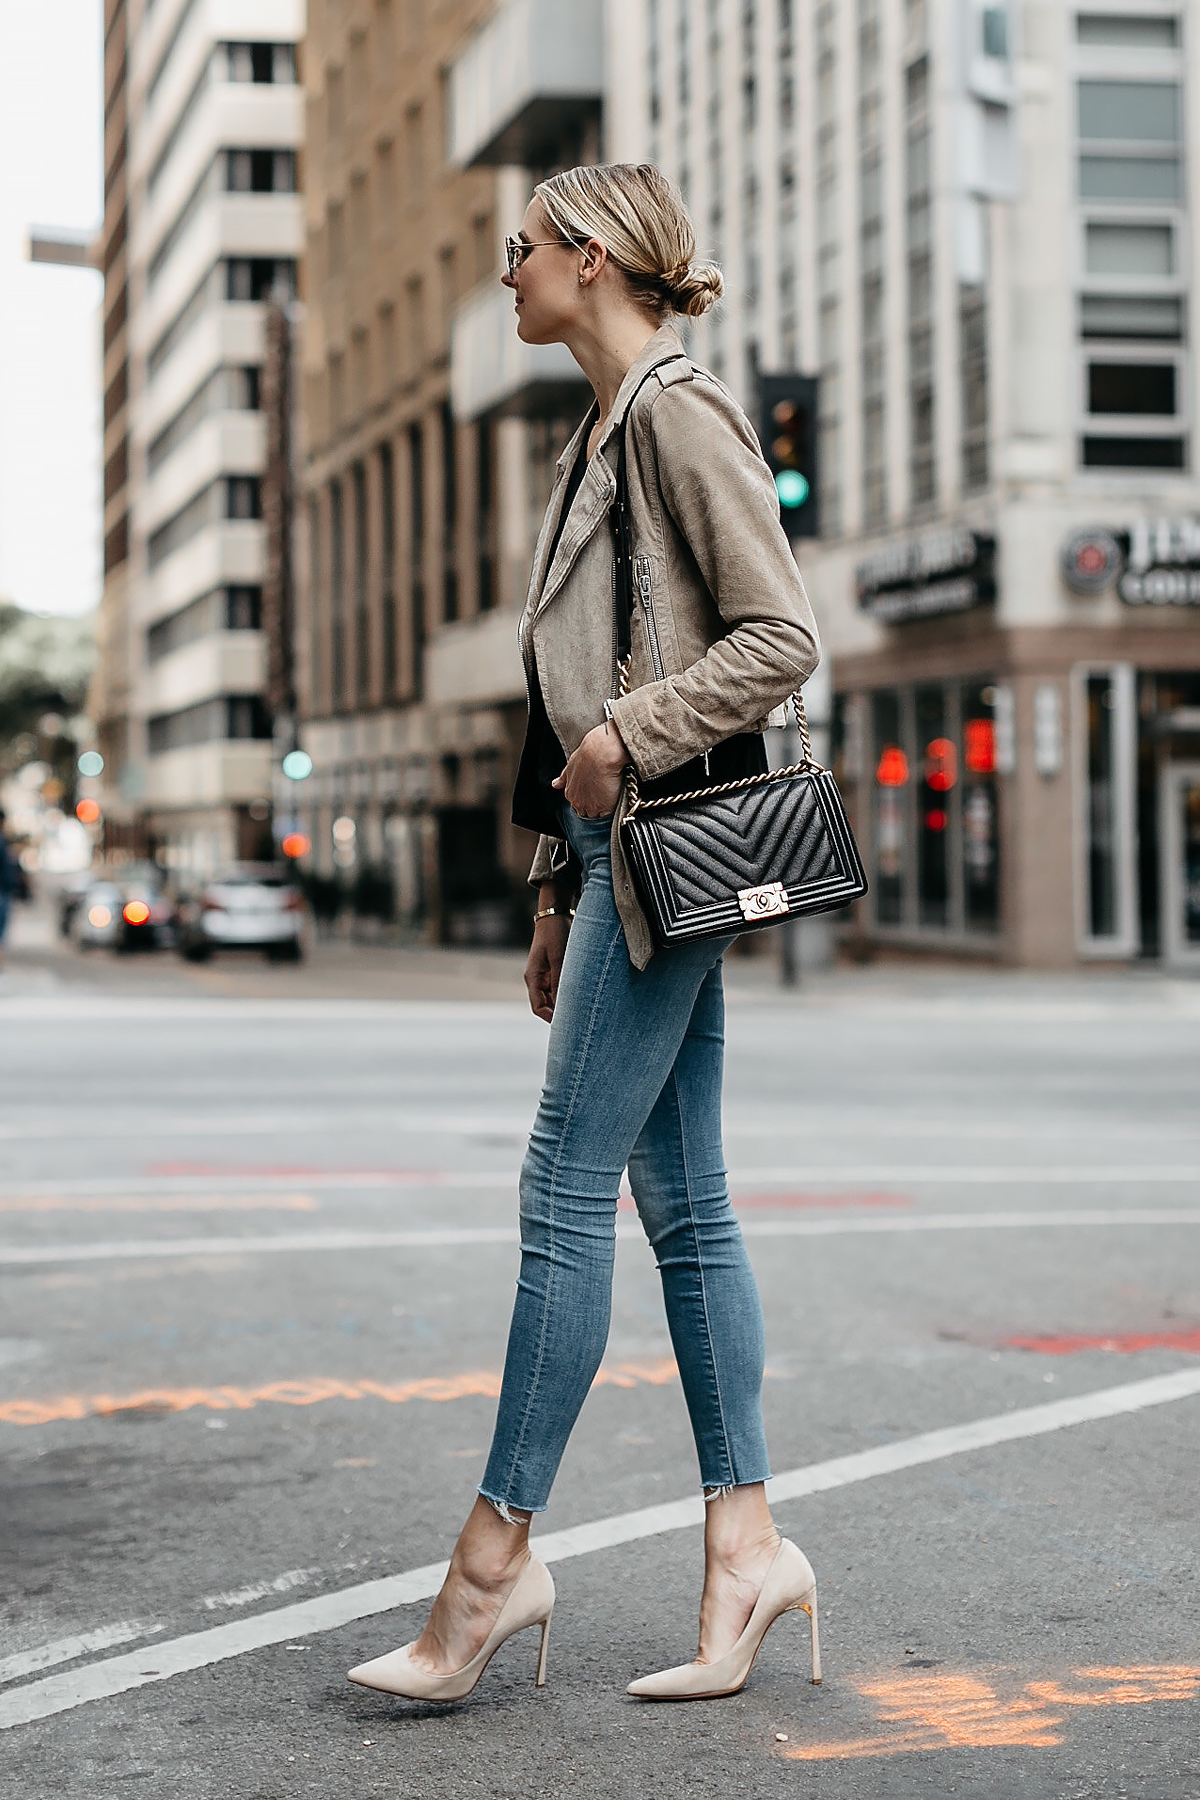 Blonde Woman Wearing Blanknyc Tan Suede Moto Jacket Denim Skinny Jeans Nude Heels Chanel Black Boy Bag Fashion Jackson Dallas Blogger Fashion Blogger Street Style